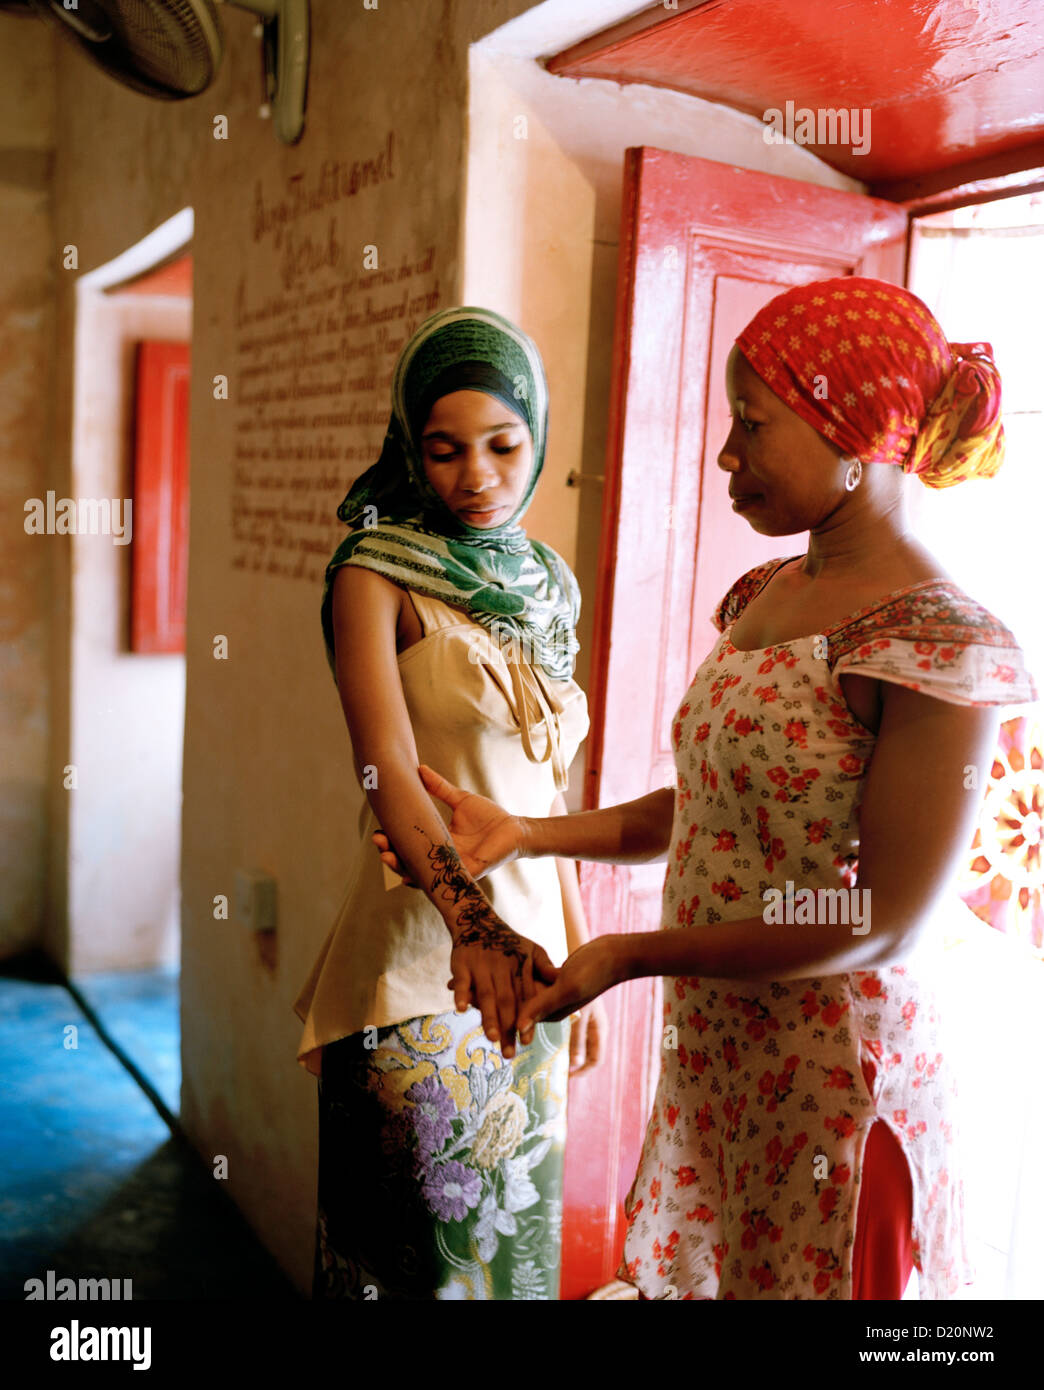 Therapist Acha with client shows henna painting at Mrembo Spa, Mrembo means beautiful woman, old house in the center - Stock Image